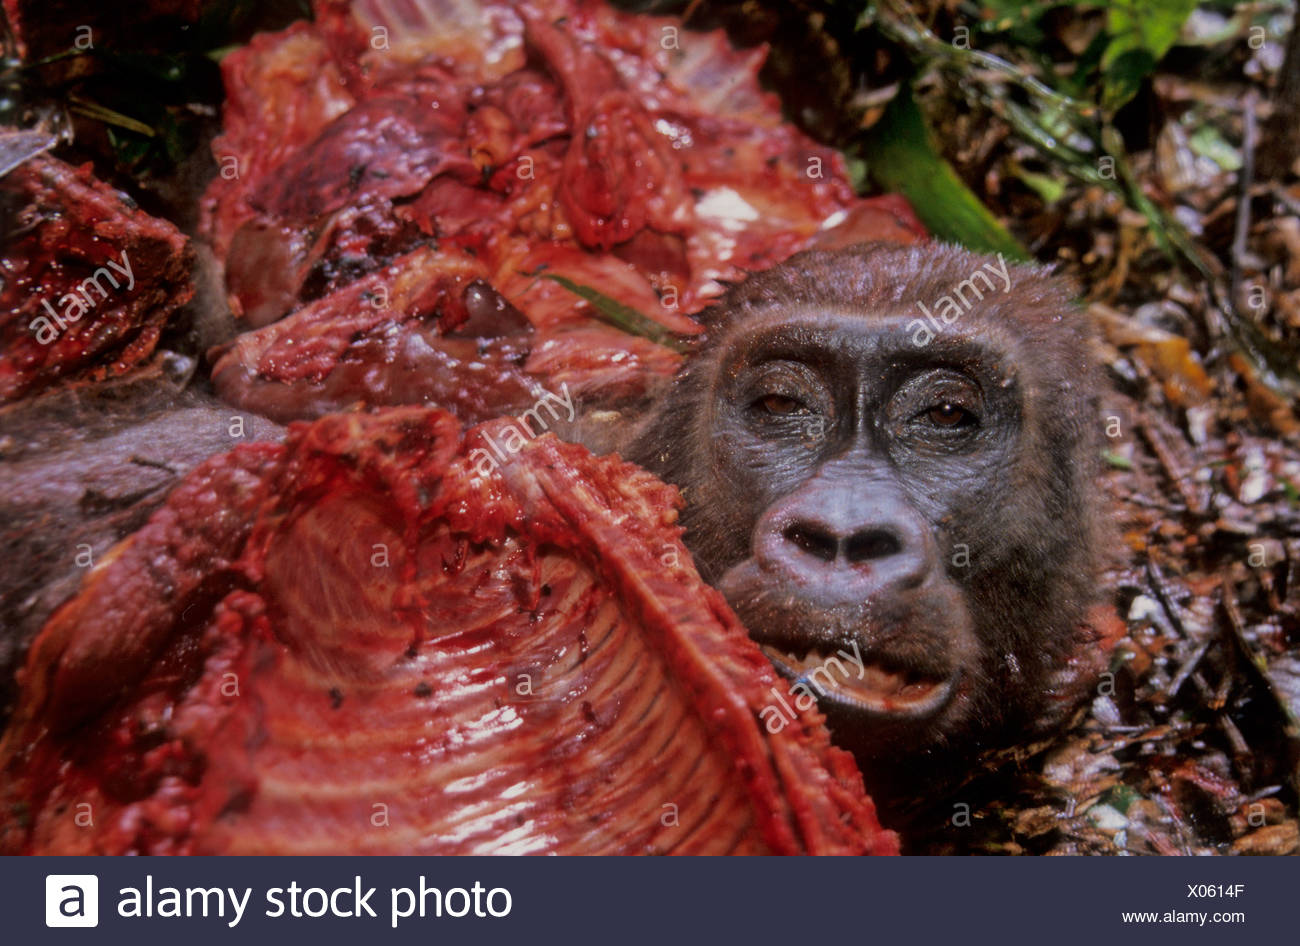 Killed Western Lowland Gorilla - Stock Image